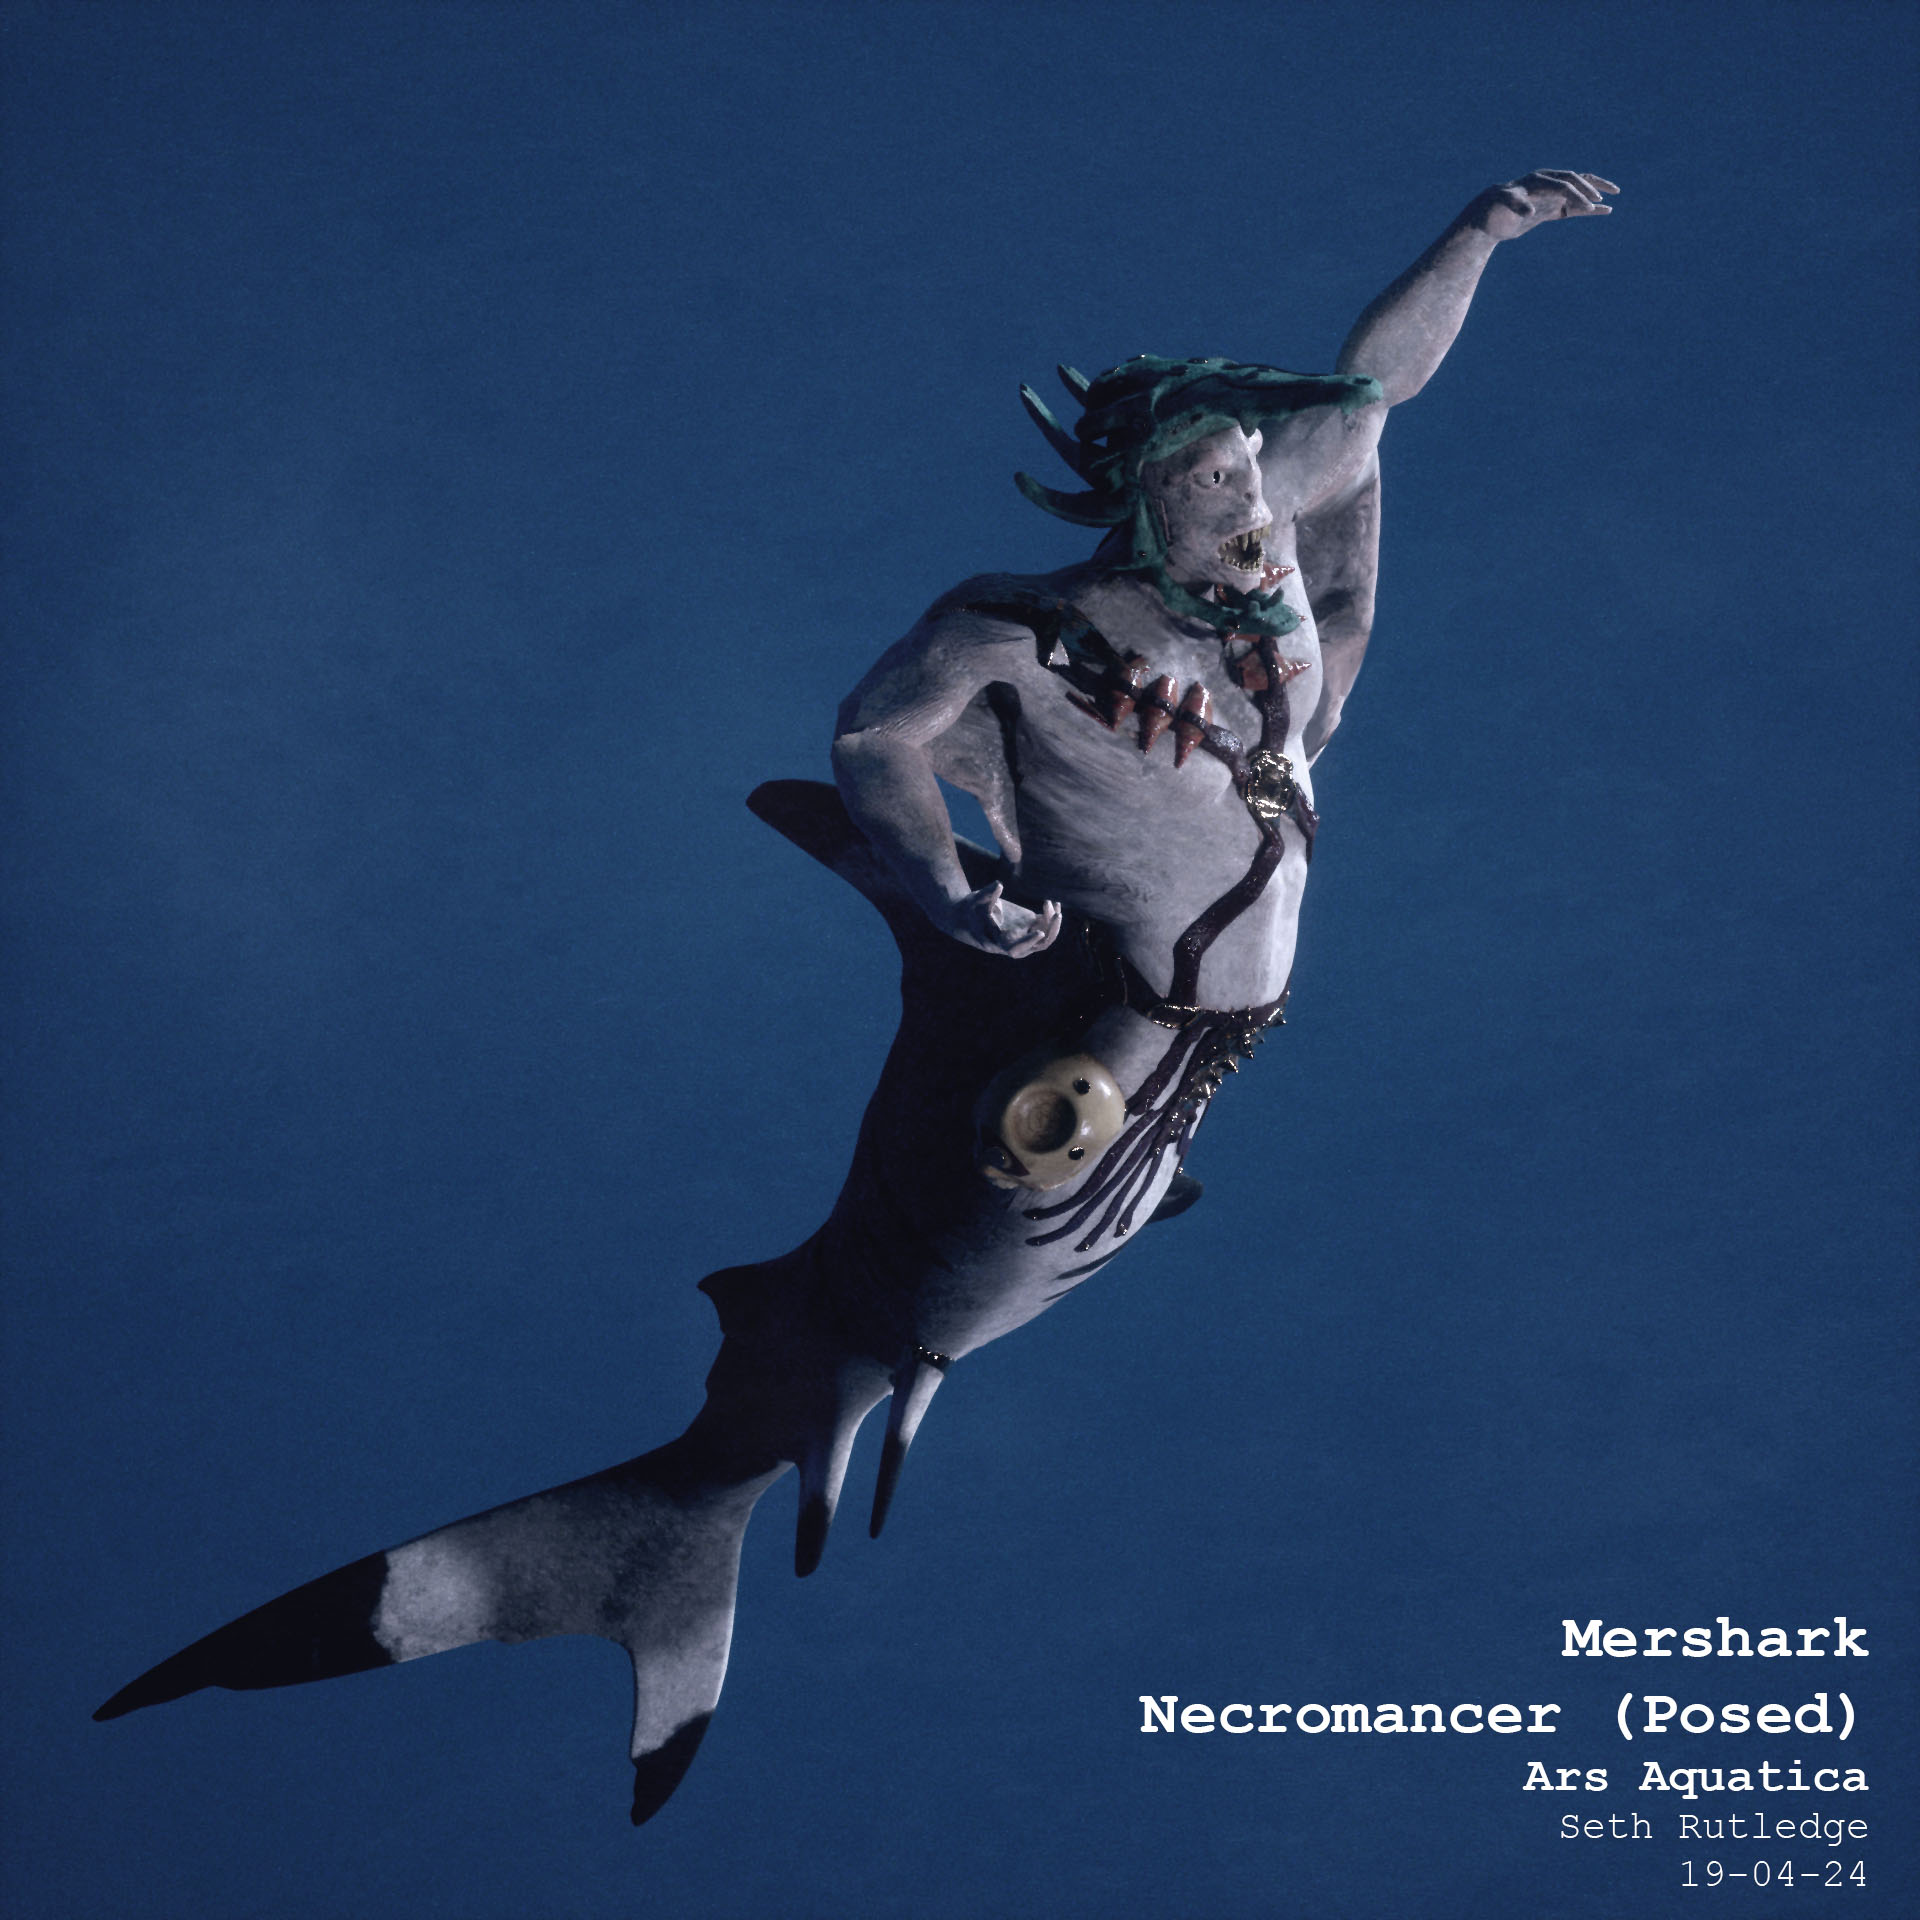 190424 Mershark Necromancer Posed1.jpg